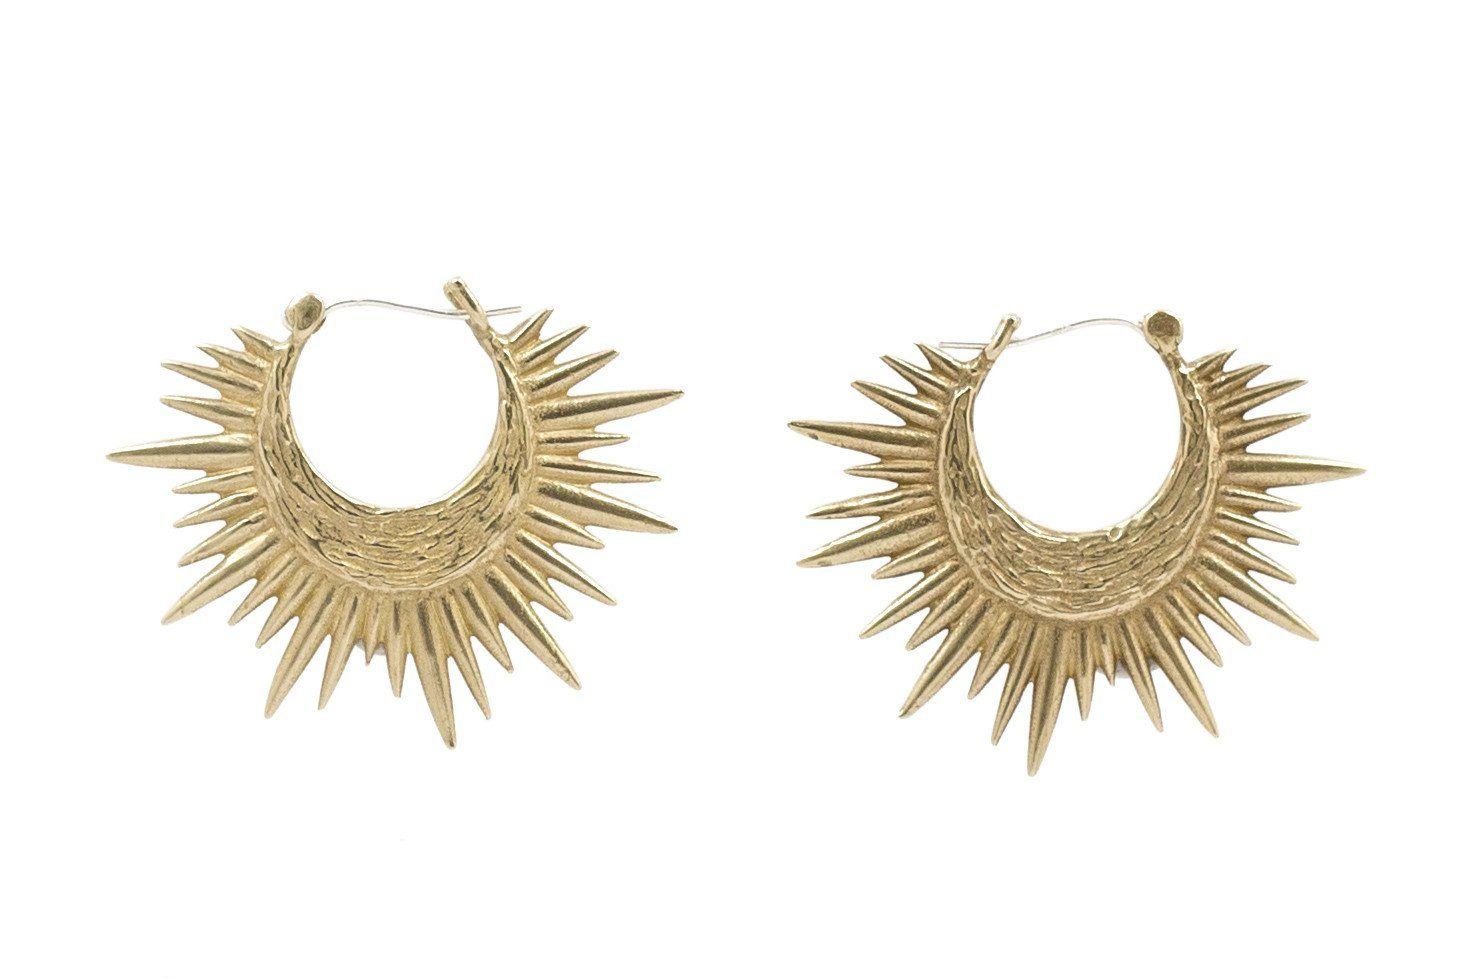 a3627b5a3 A true showstopper, the Luminous Hoops channel the energy of the sun at its  brightest and most radiant. No matter what they're paired with, they add  plenty ...